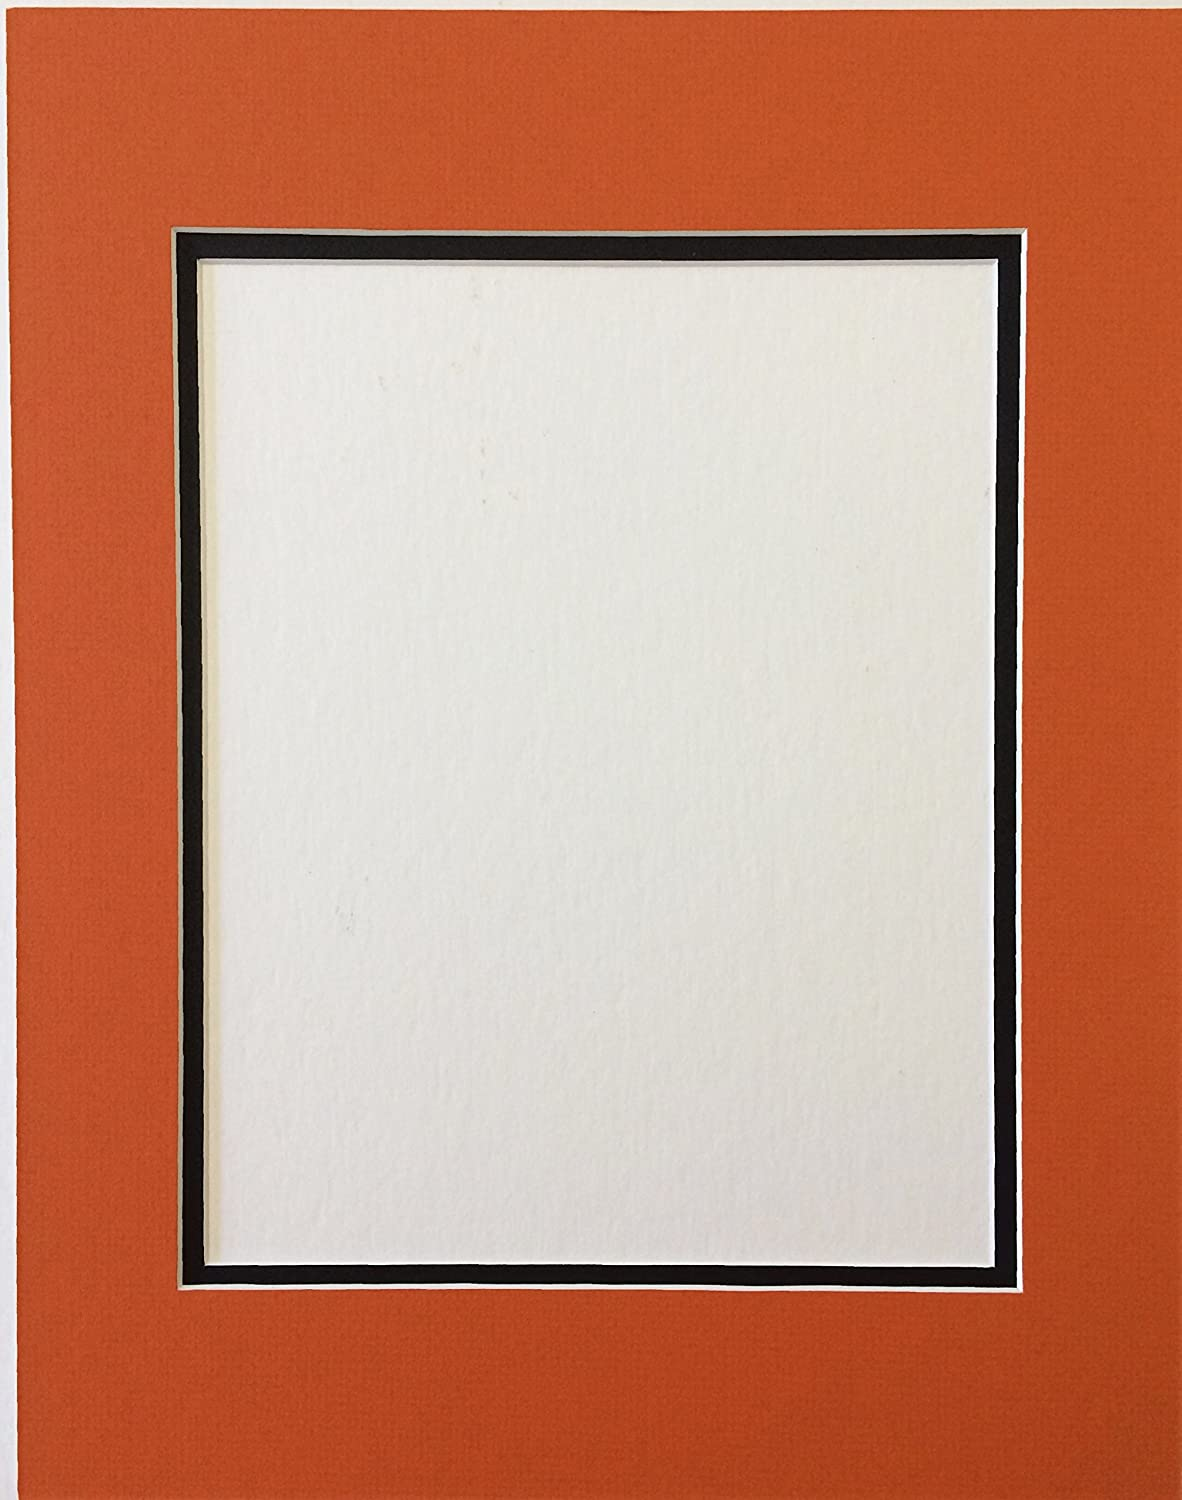 16x20 Orange and Black Double Picture 67% Fresno Mall OFF of fixed price P Cut for 11x14 Mat Bevel